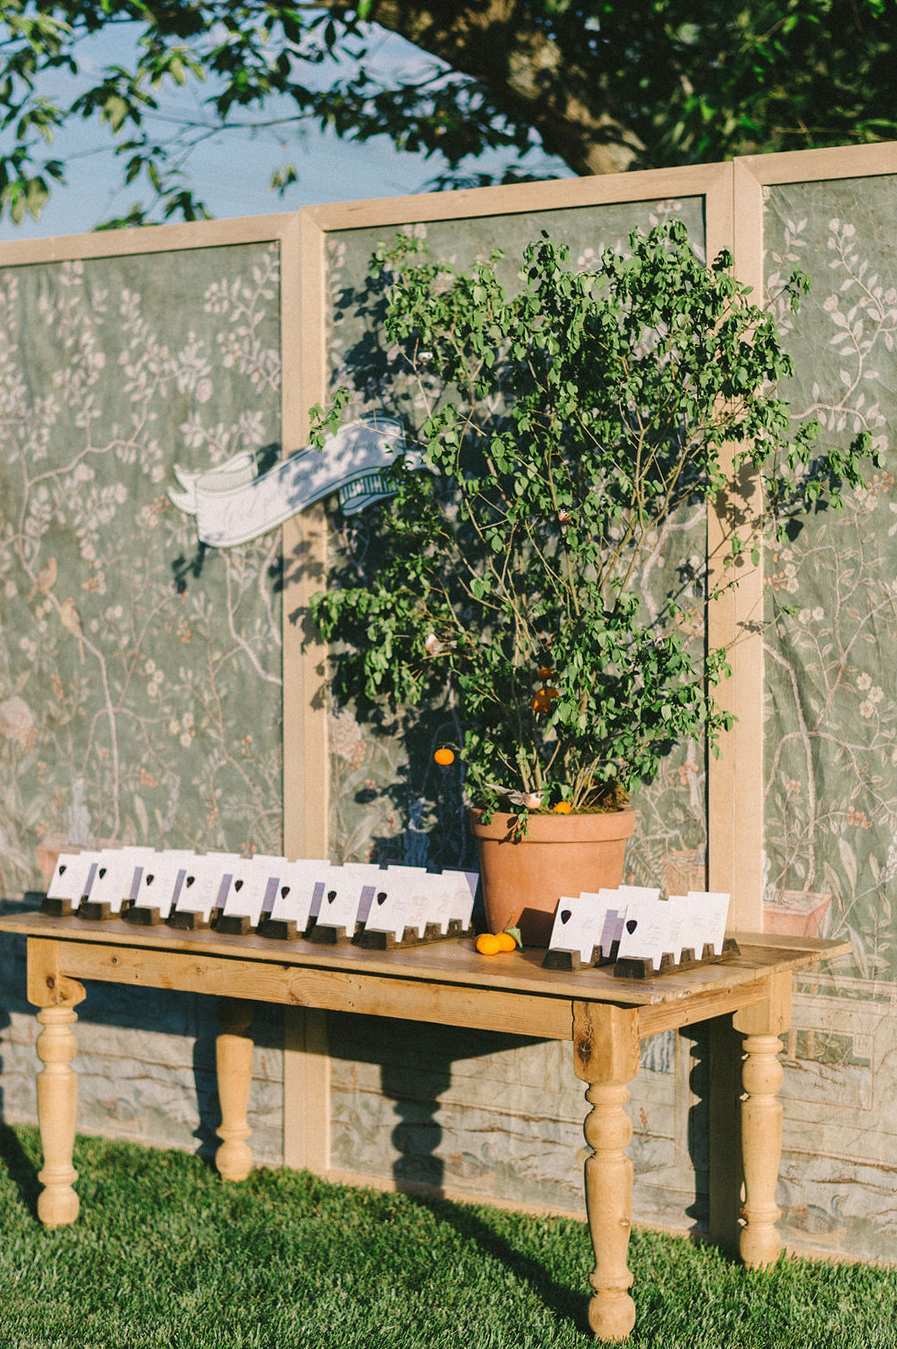 wooden table with escort cards and citrus plant